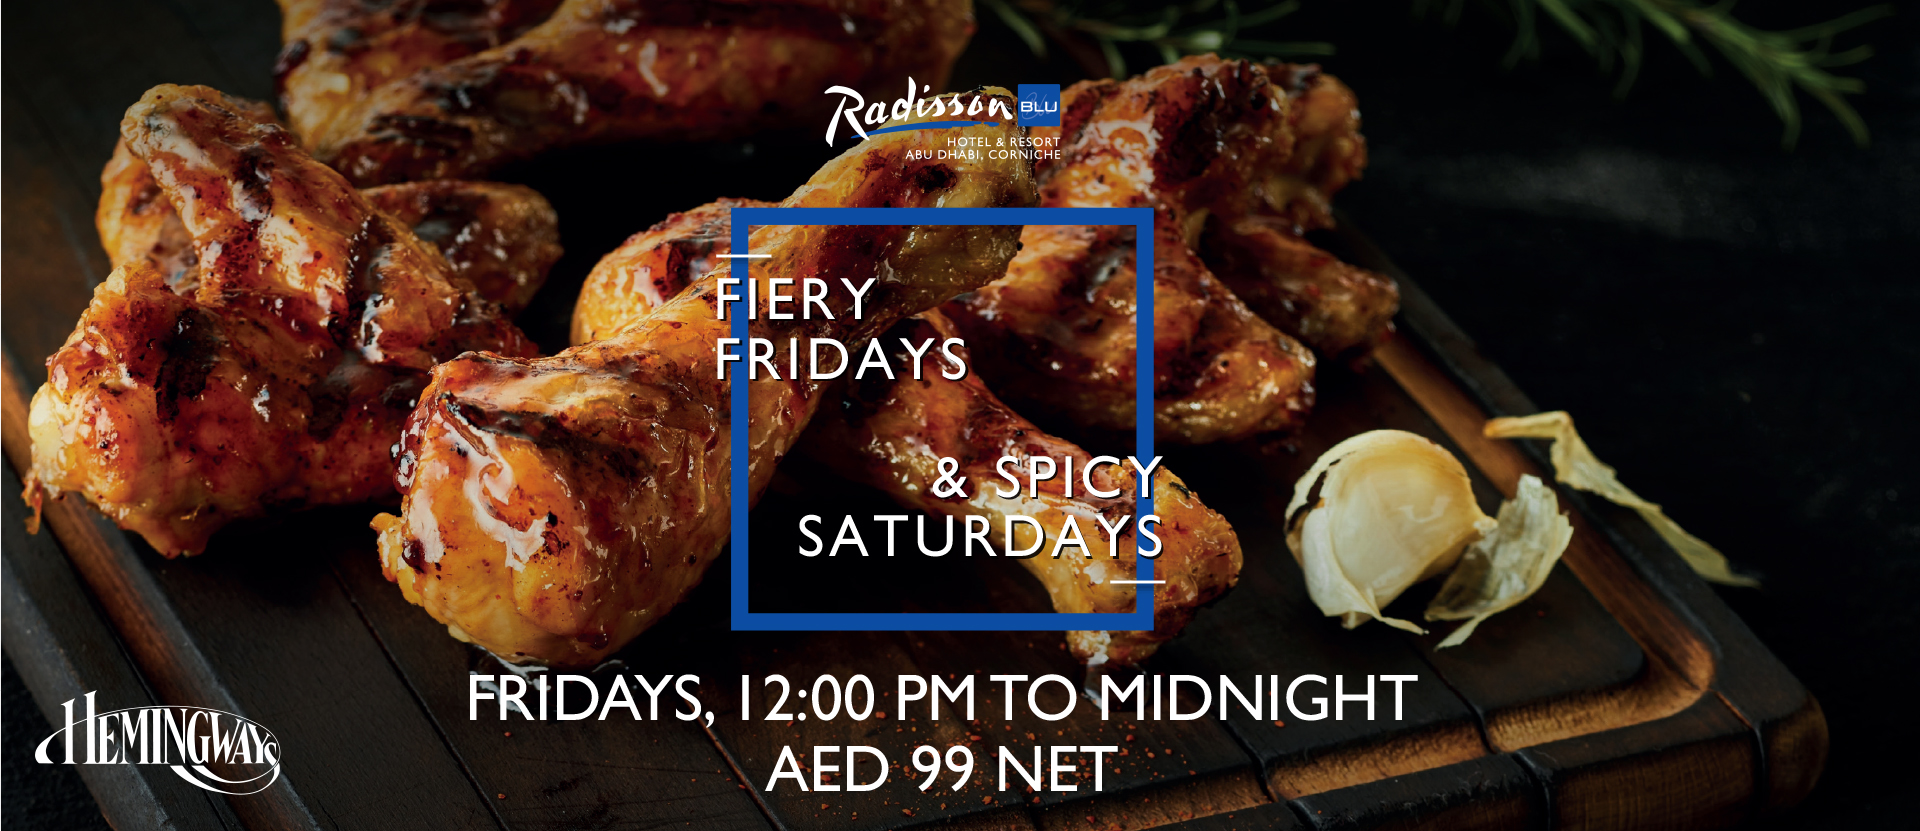 Fiery Fridays & Spicy Saturdays @ Hemingway's